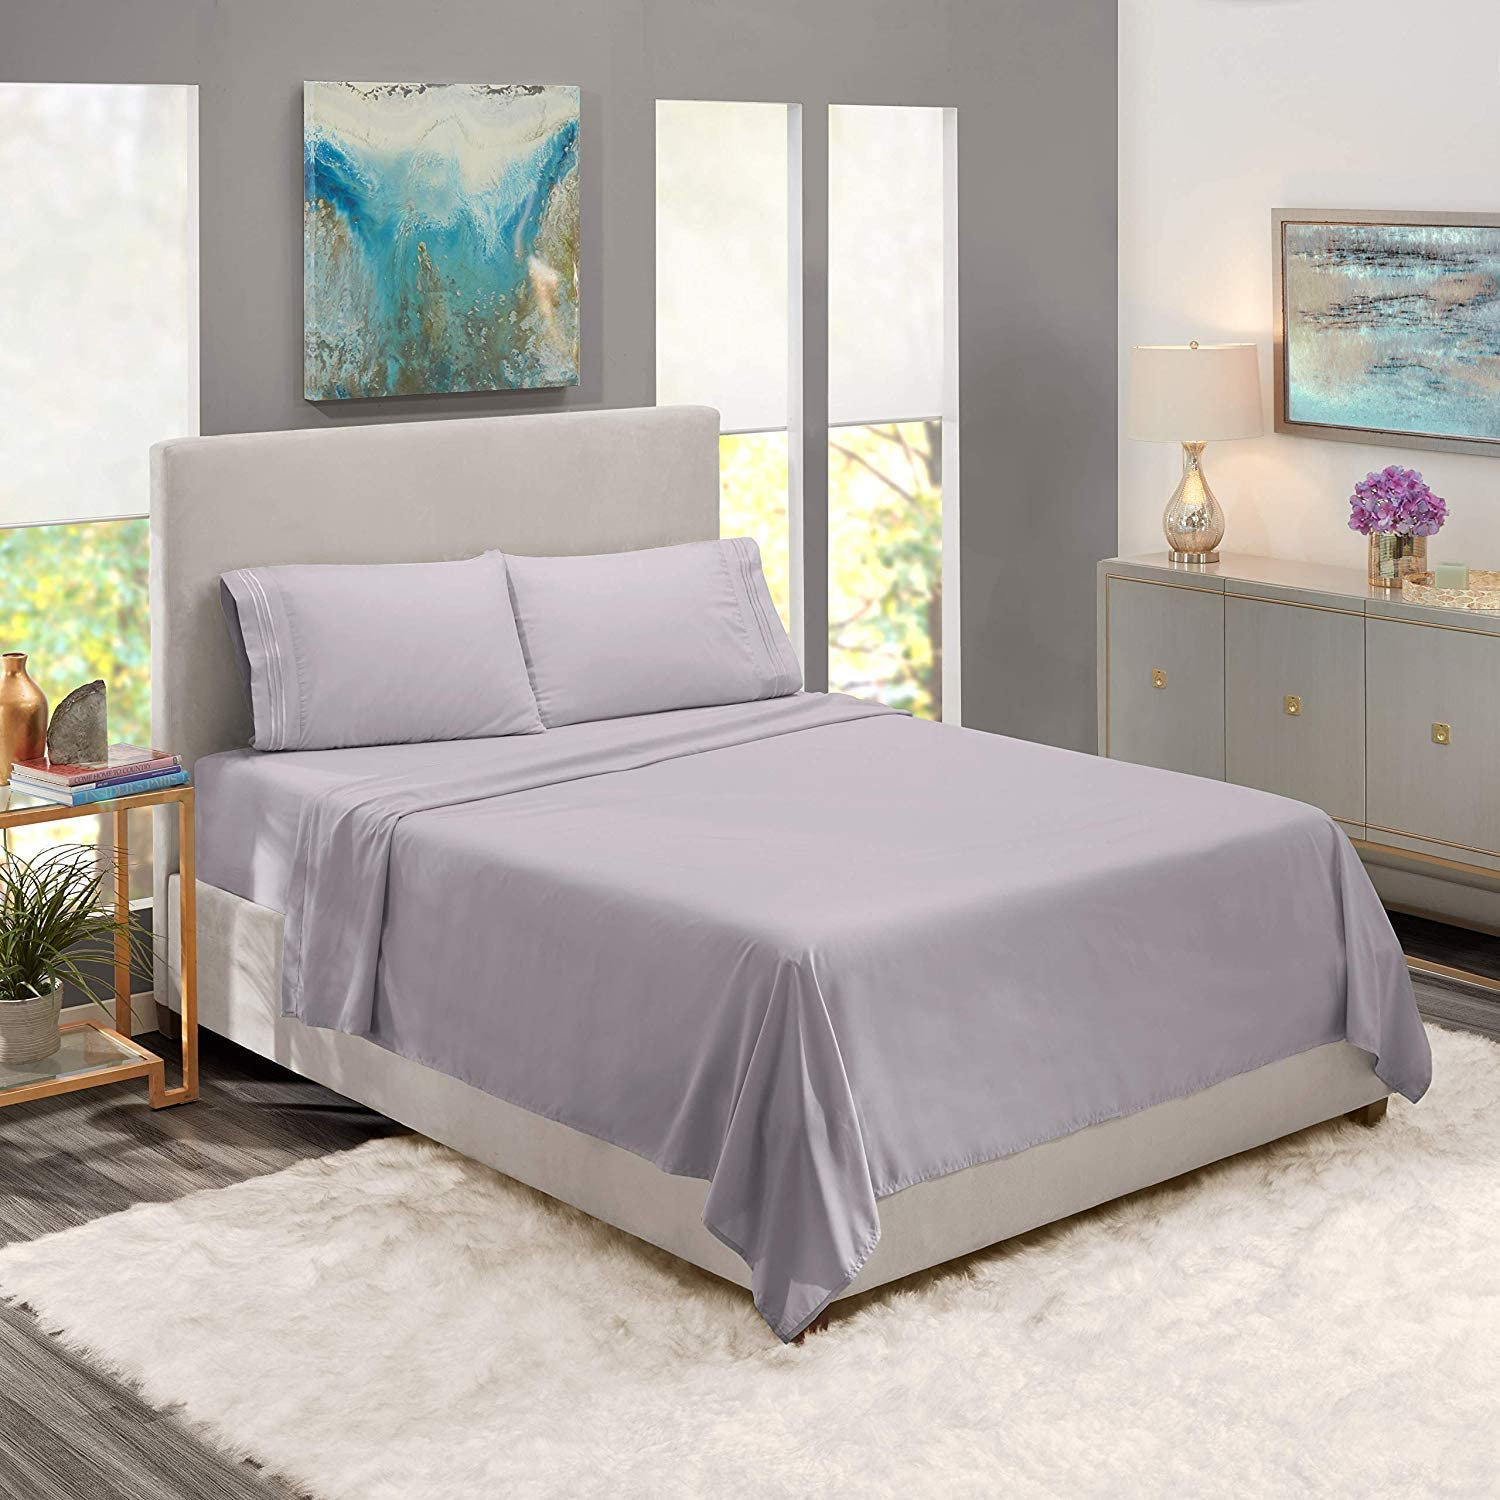 Clara Clark 4pc Bed Sheet Set King Queen with Set of 4 Adjustable Straps